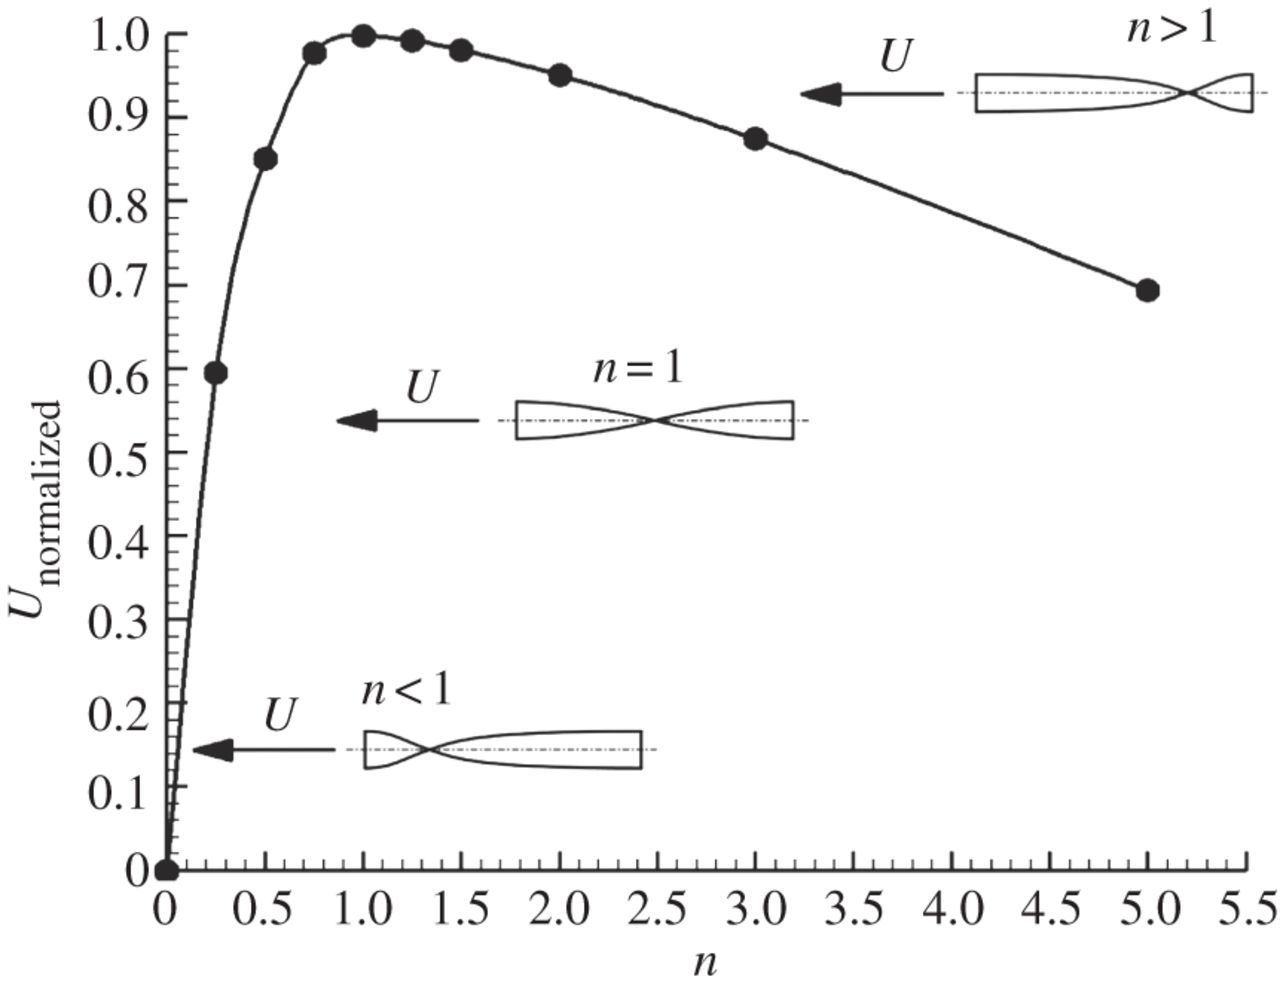 Numerical modelling of chirality-induced bi-directional swimming of on